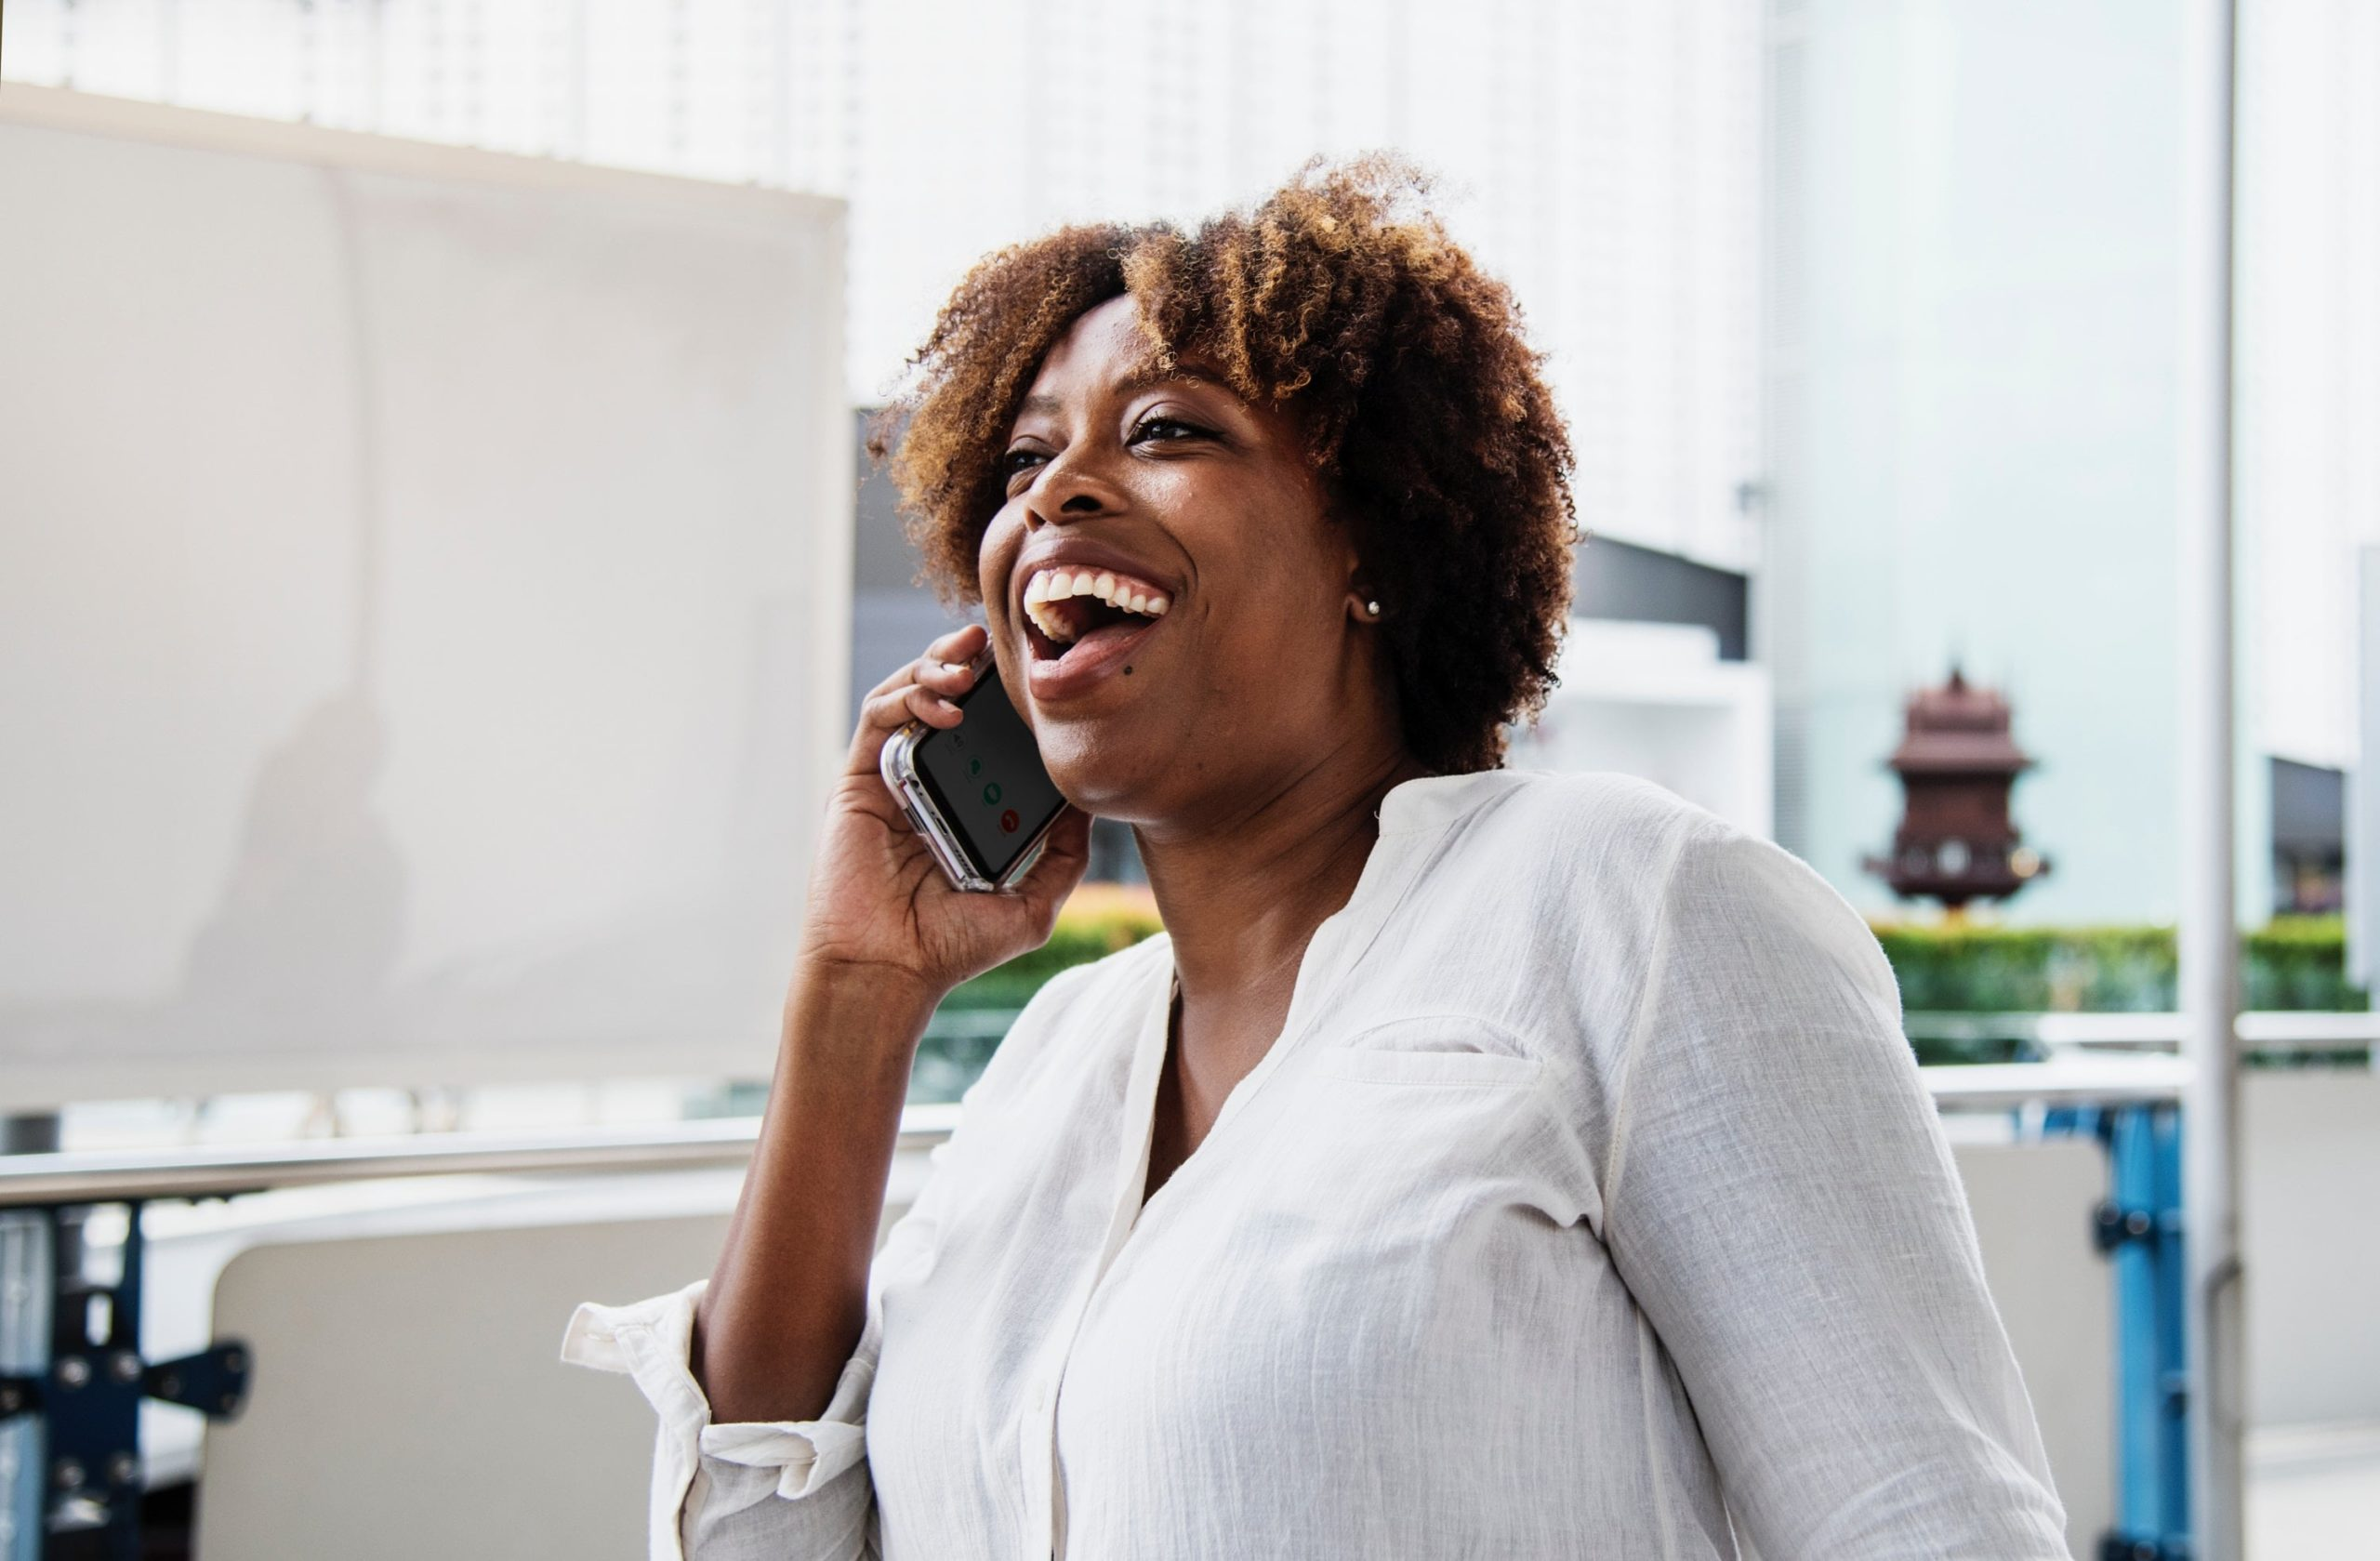 A happy person receiving a phone call.